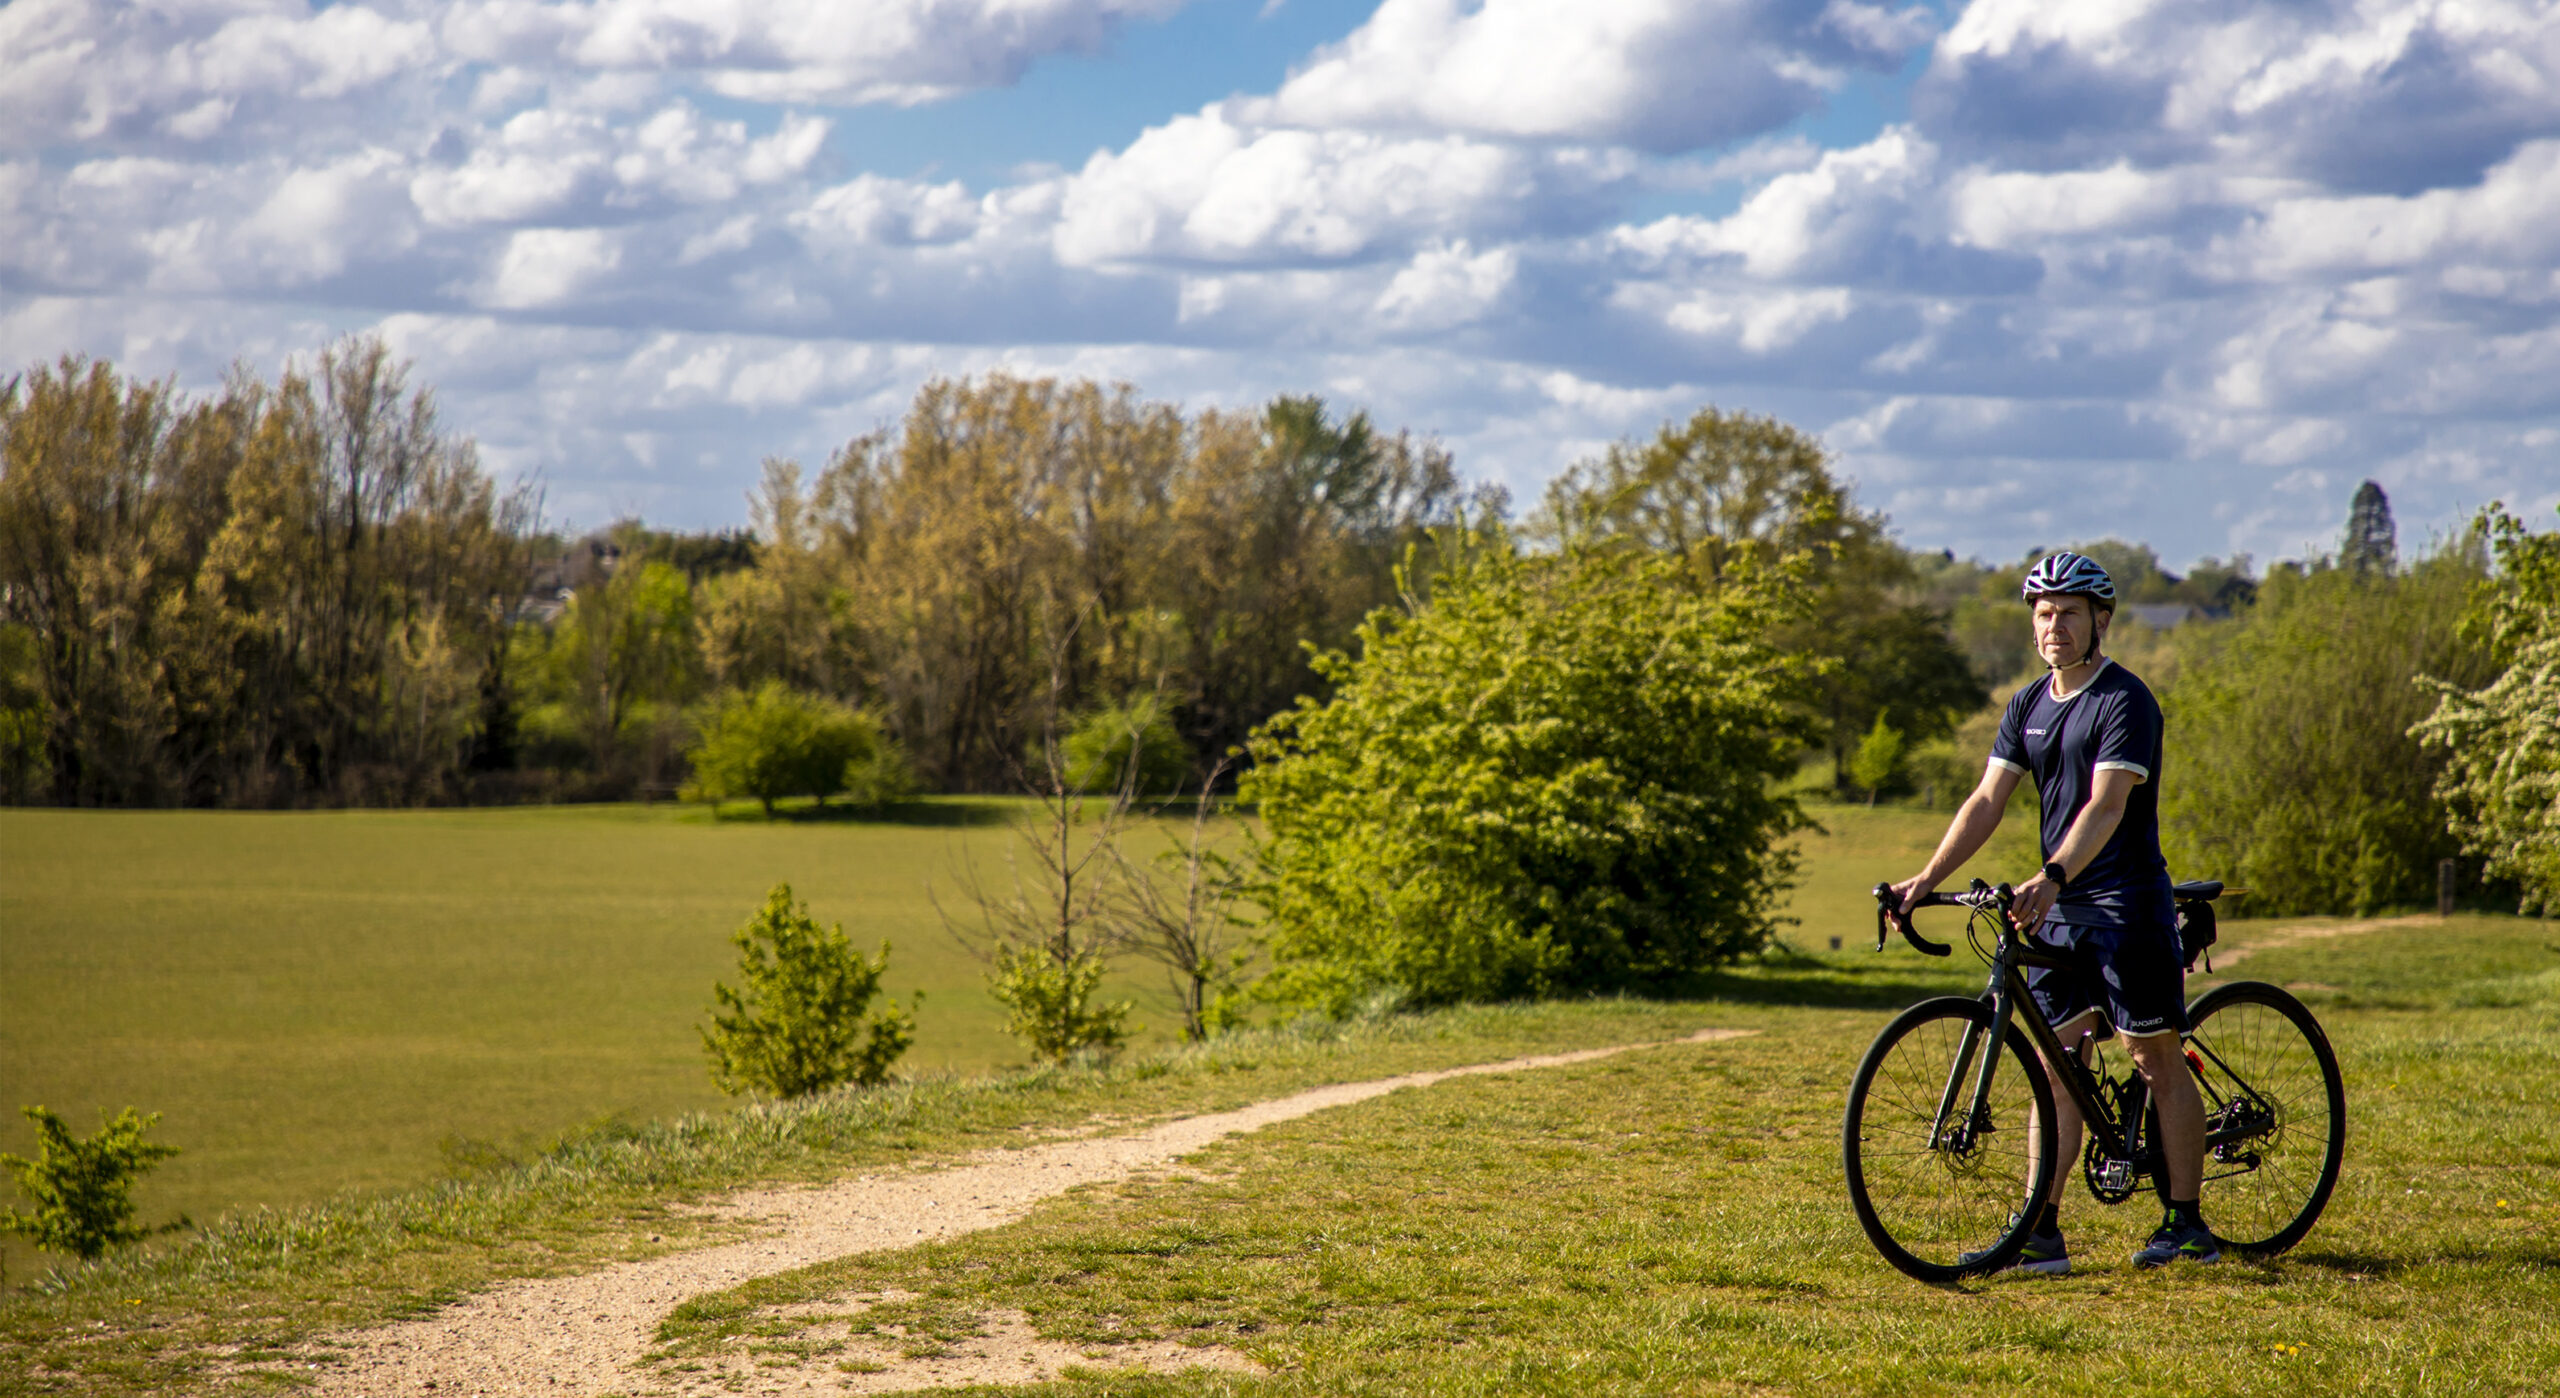 cycling in the park image